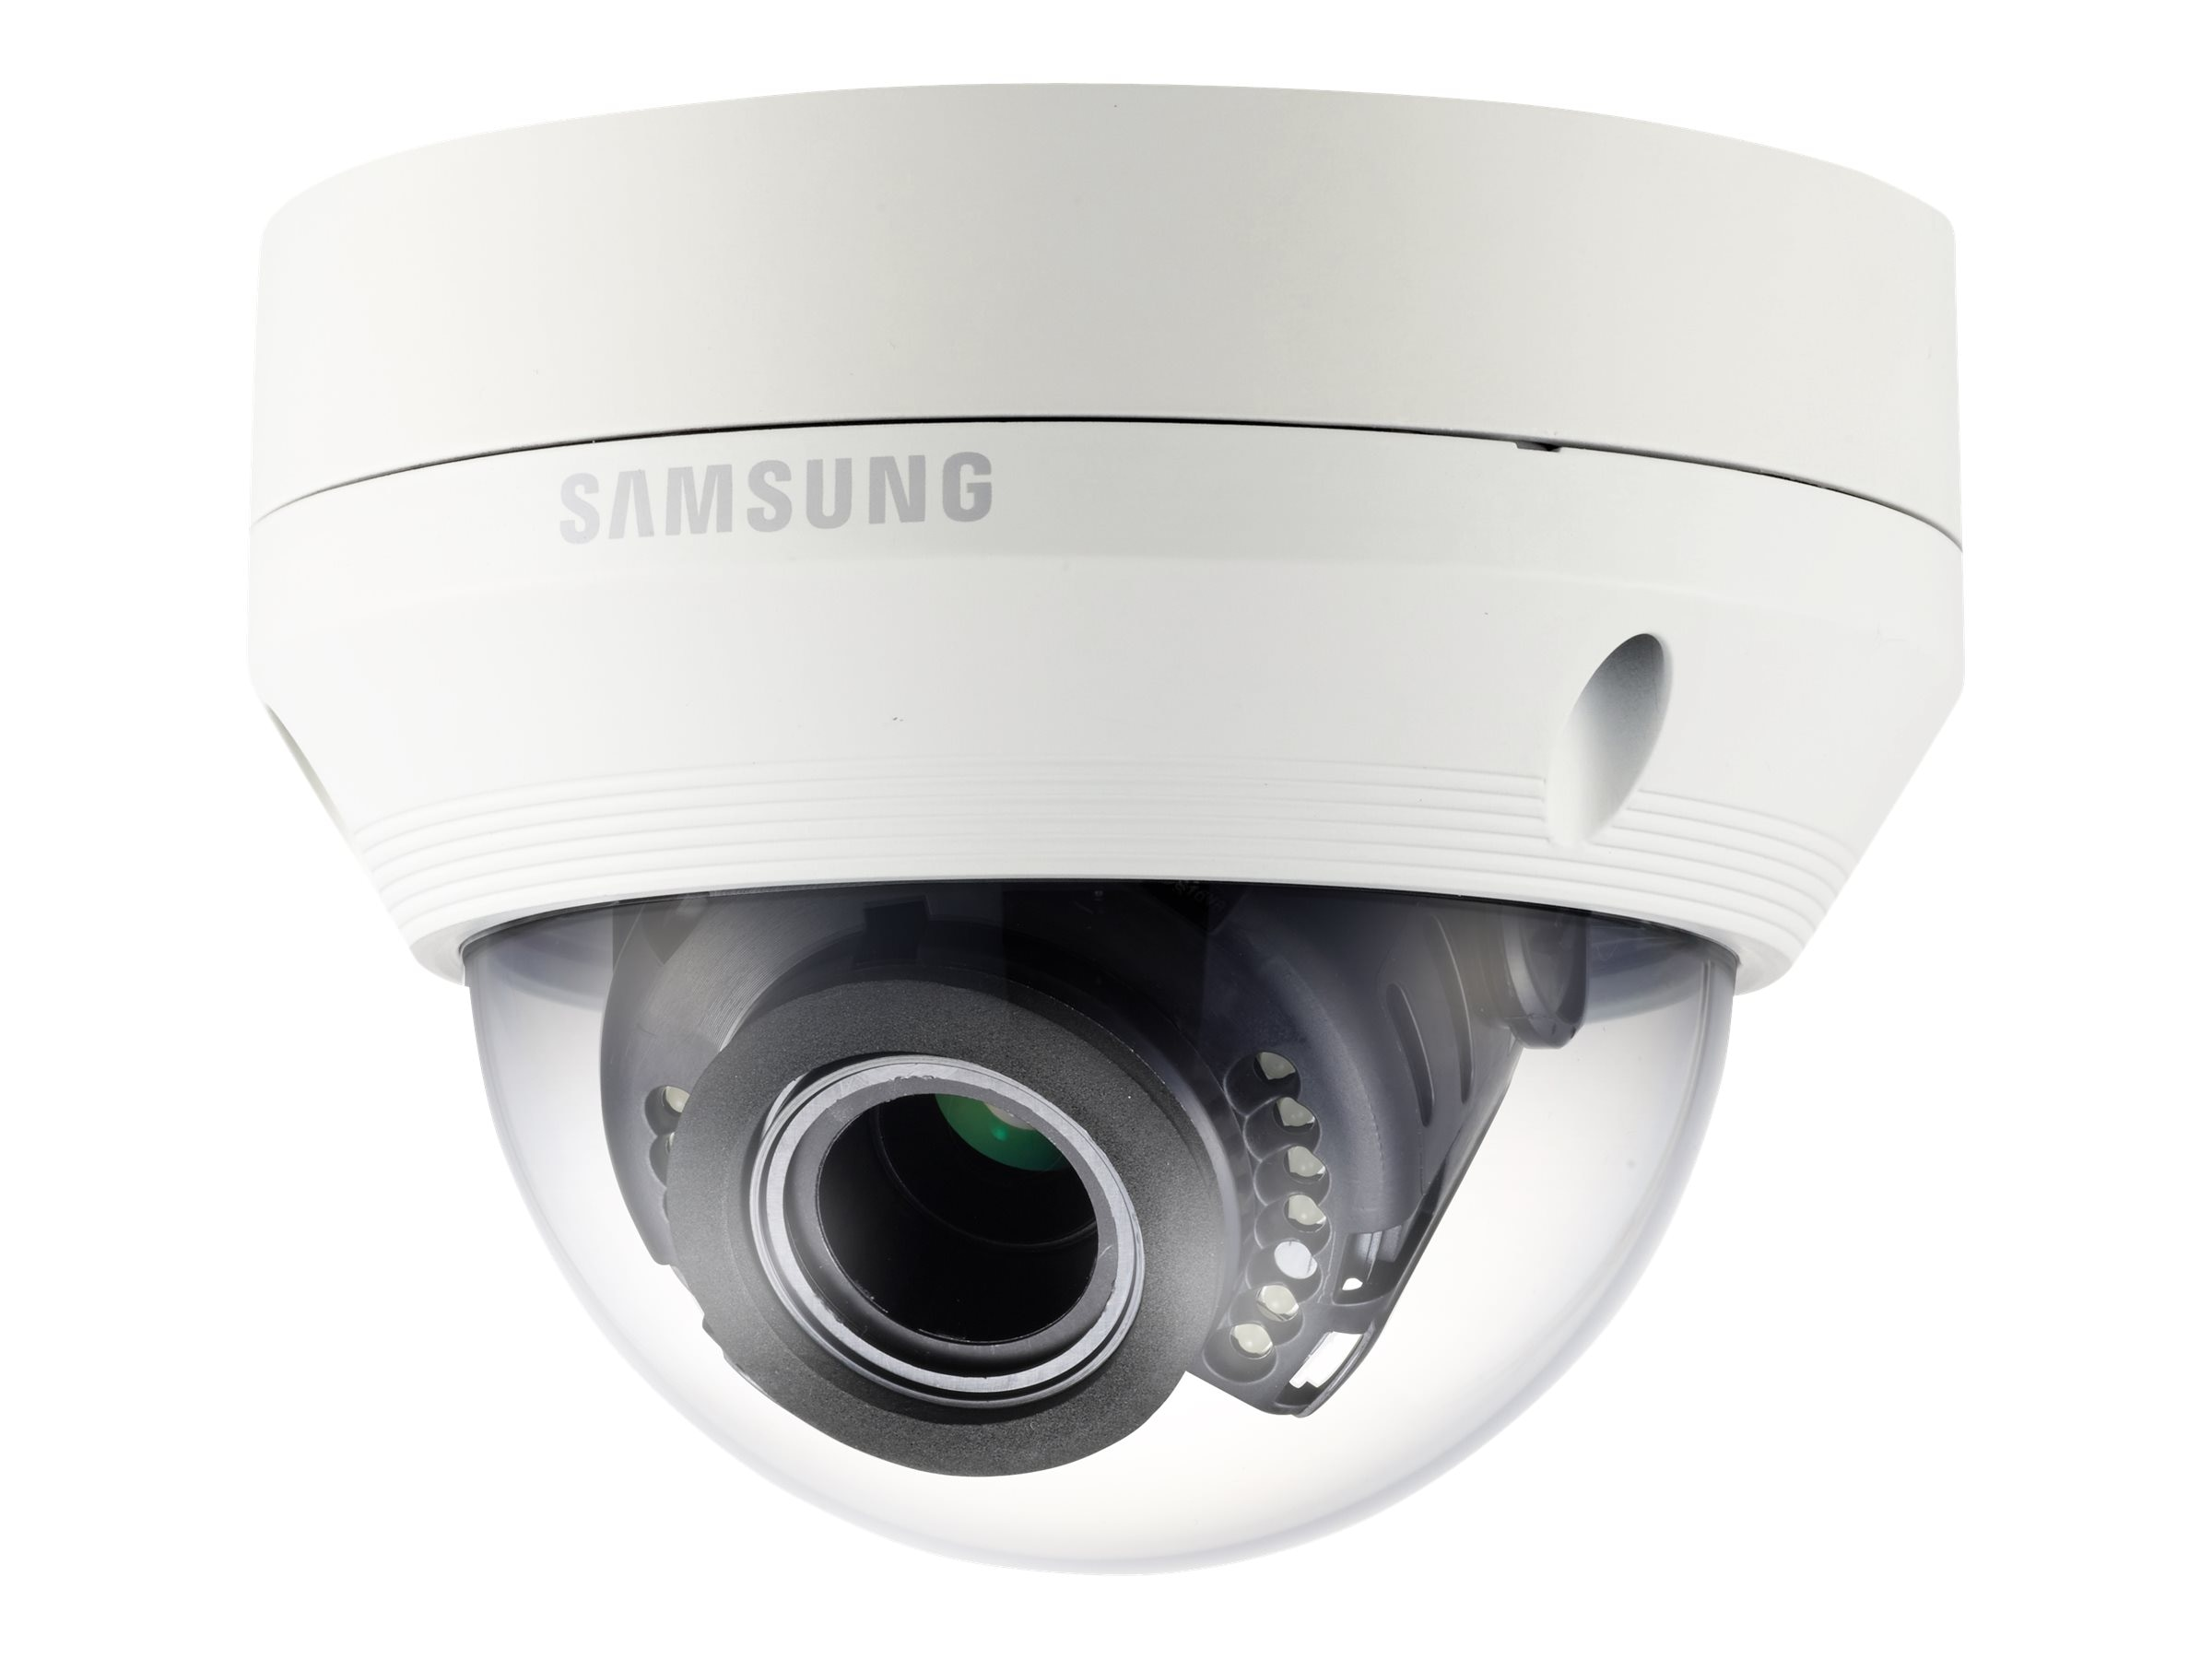 Samsung 1080p Analog HD Vandal-Resistant IR Dome Camera